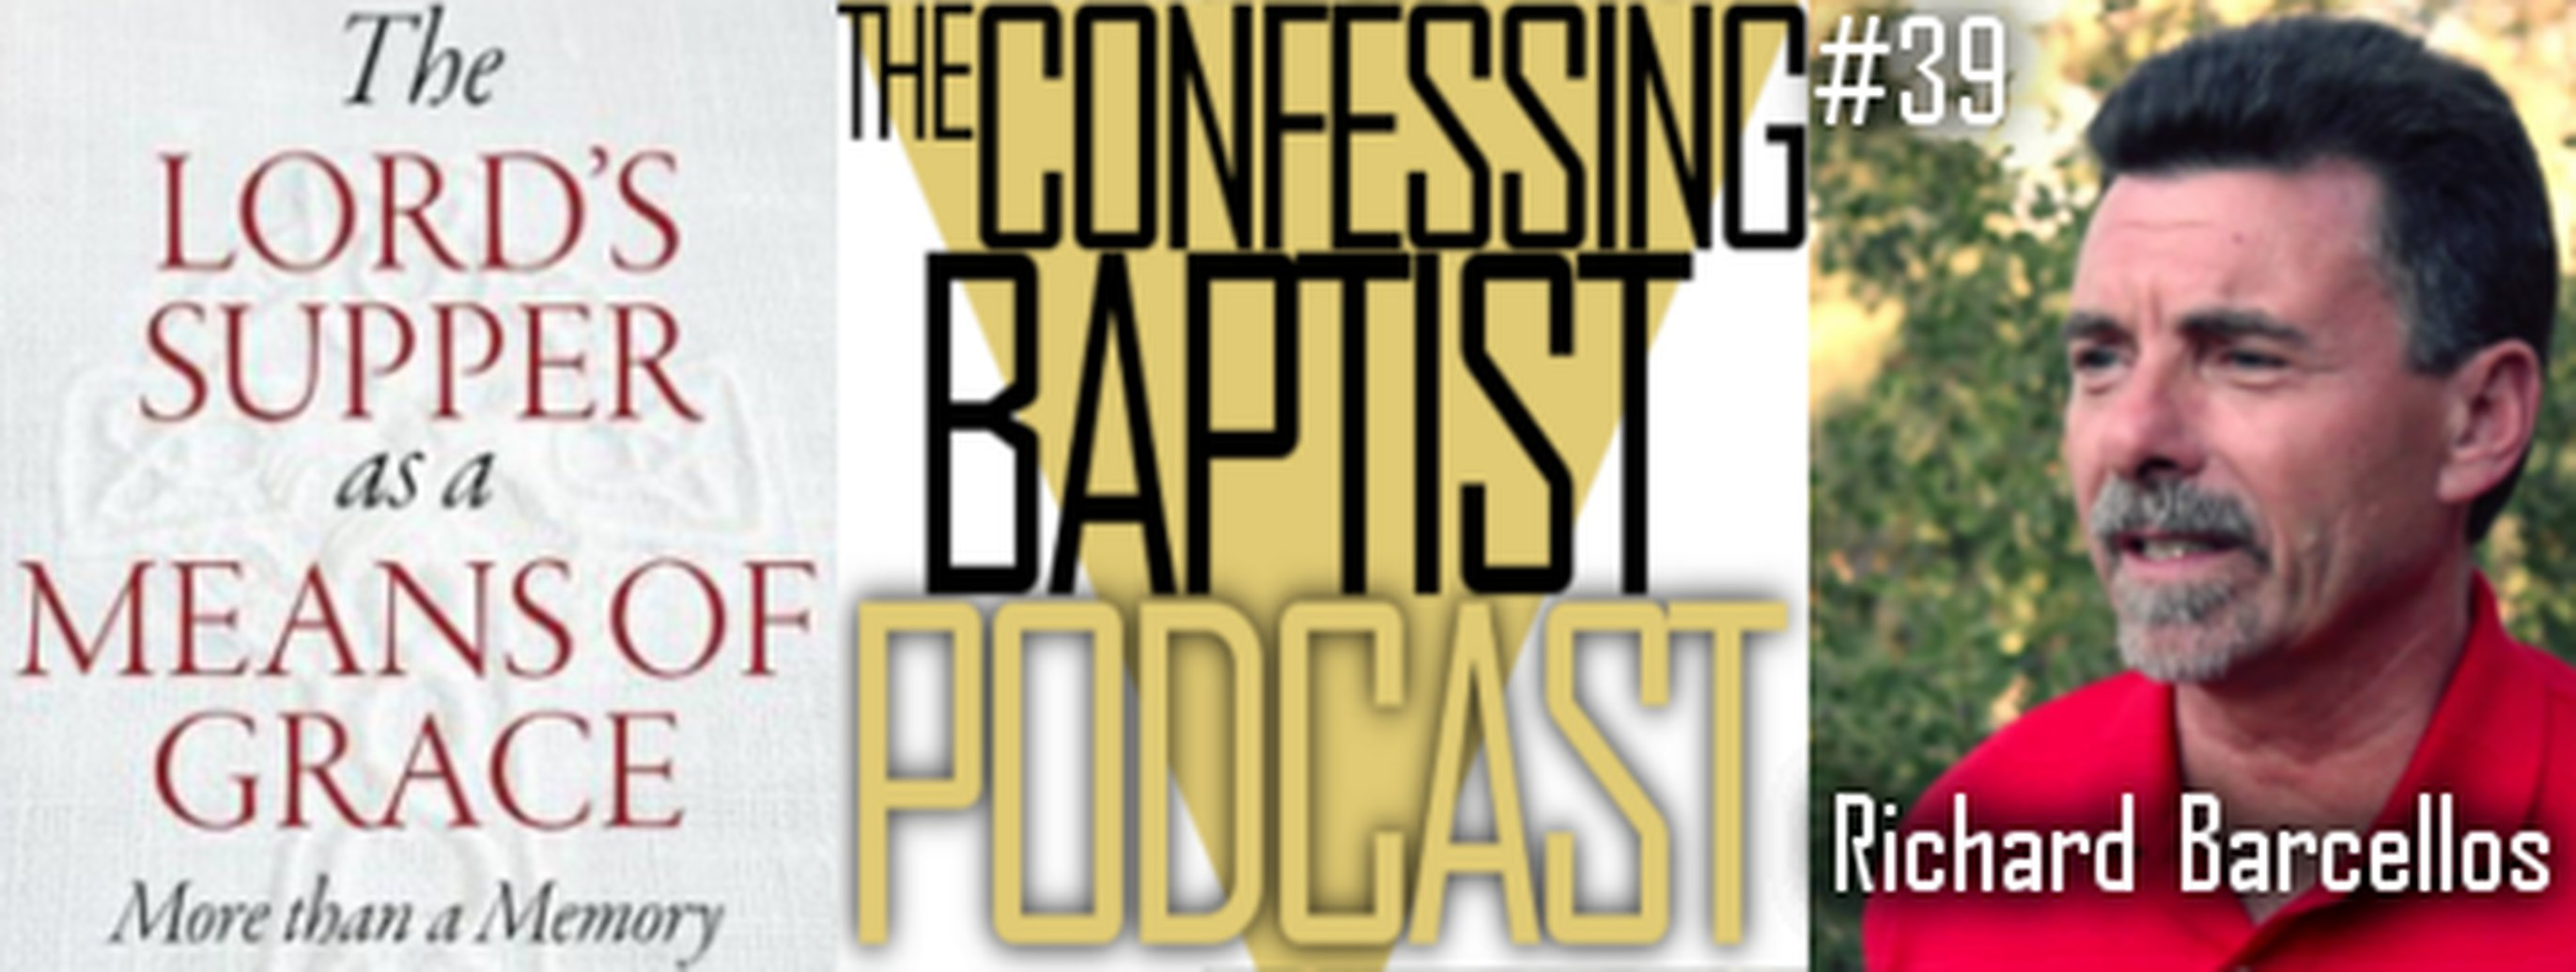 Richard Barcellos Interviewed On The Confessing Baptist Podcast